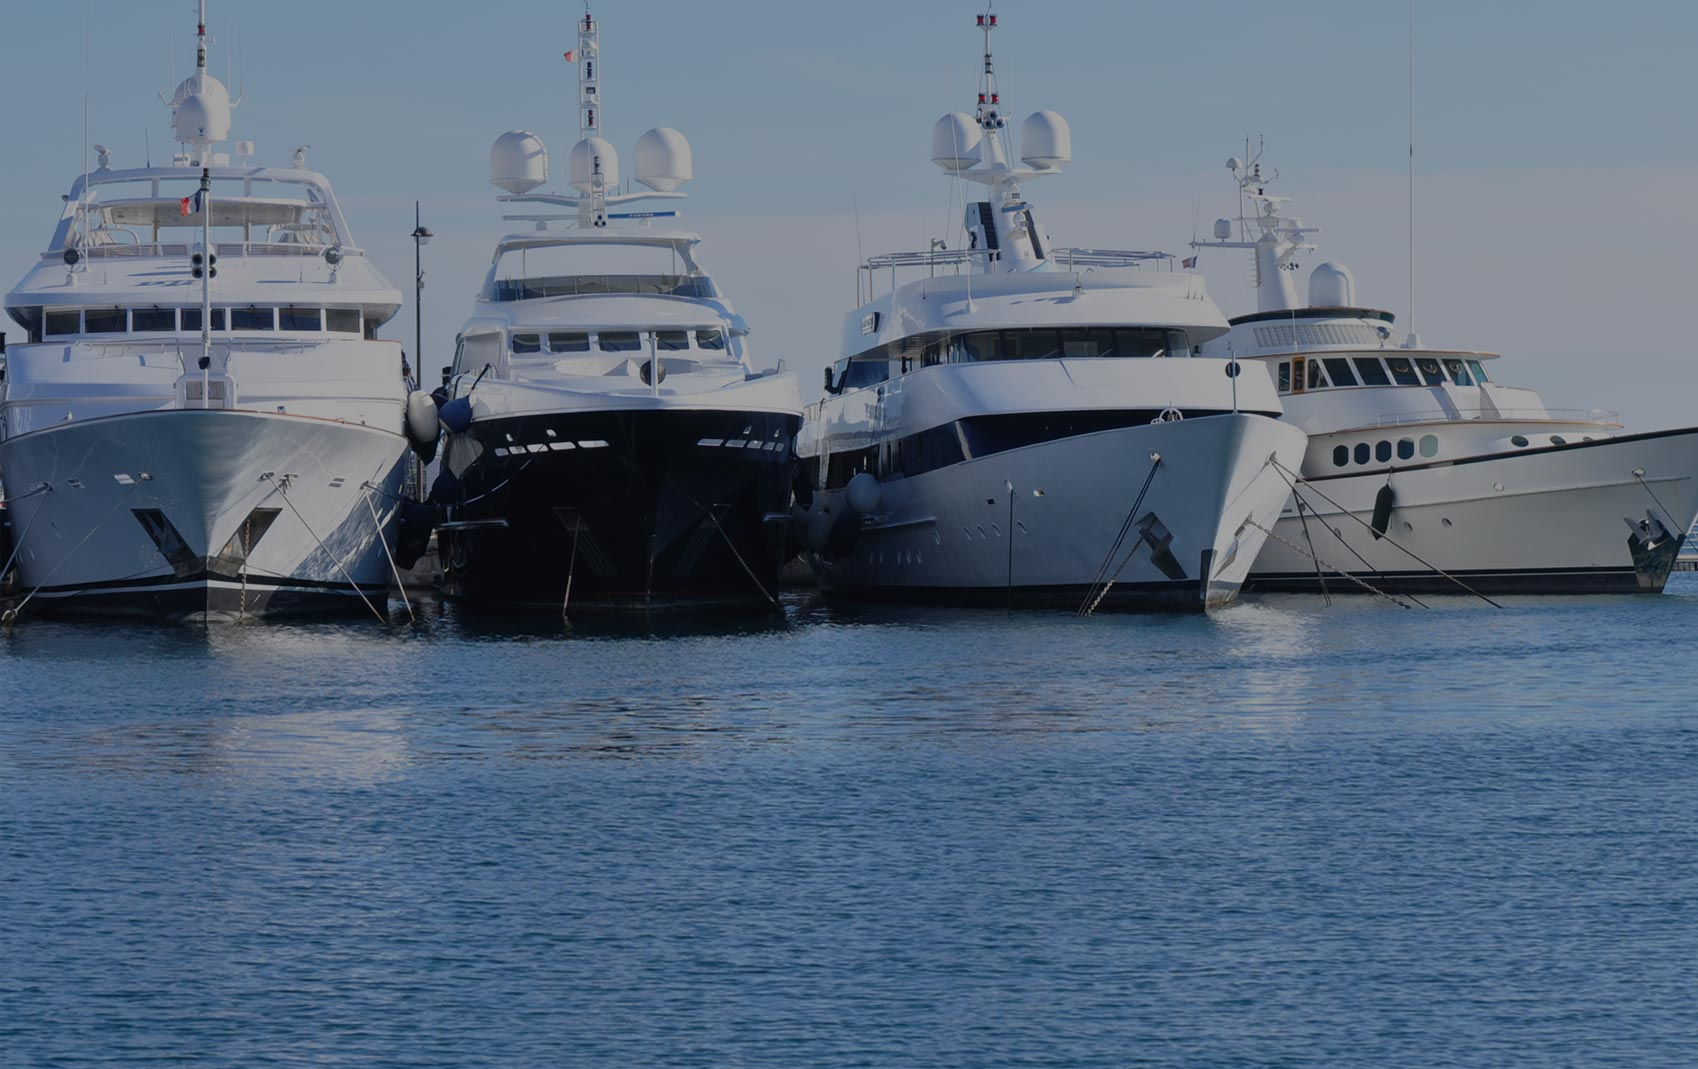 Used luxury motor yachts for sale new orleans for Luxury motor yachts for sale